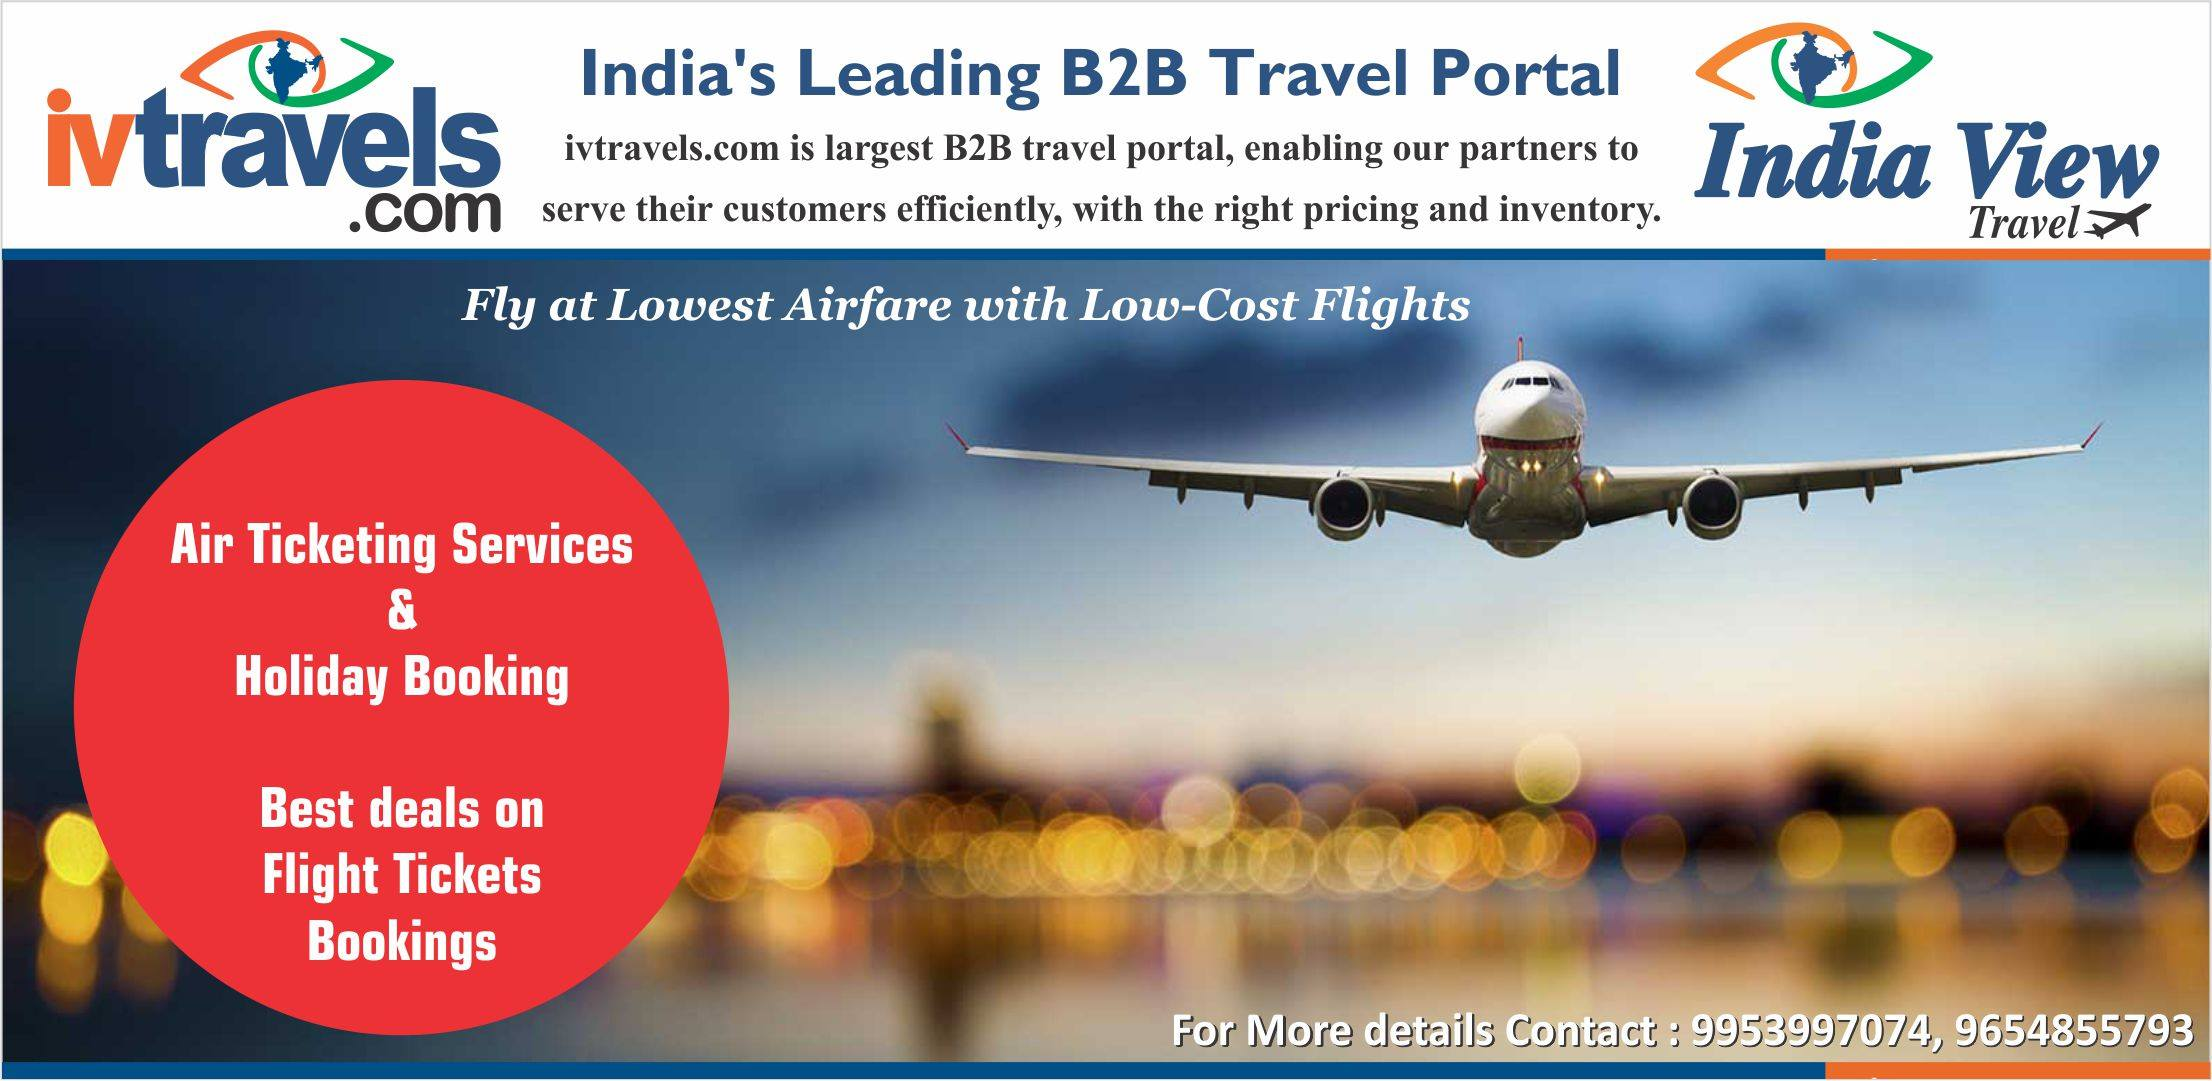 India View Travels, tour packages, tour planning, travel itineraries by Expert agents